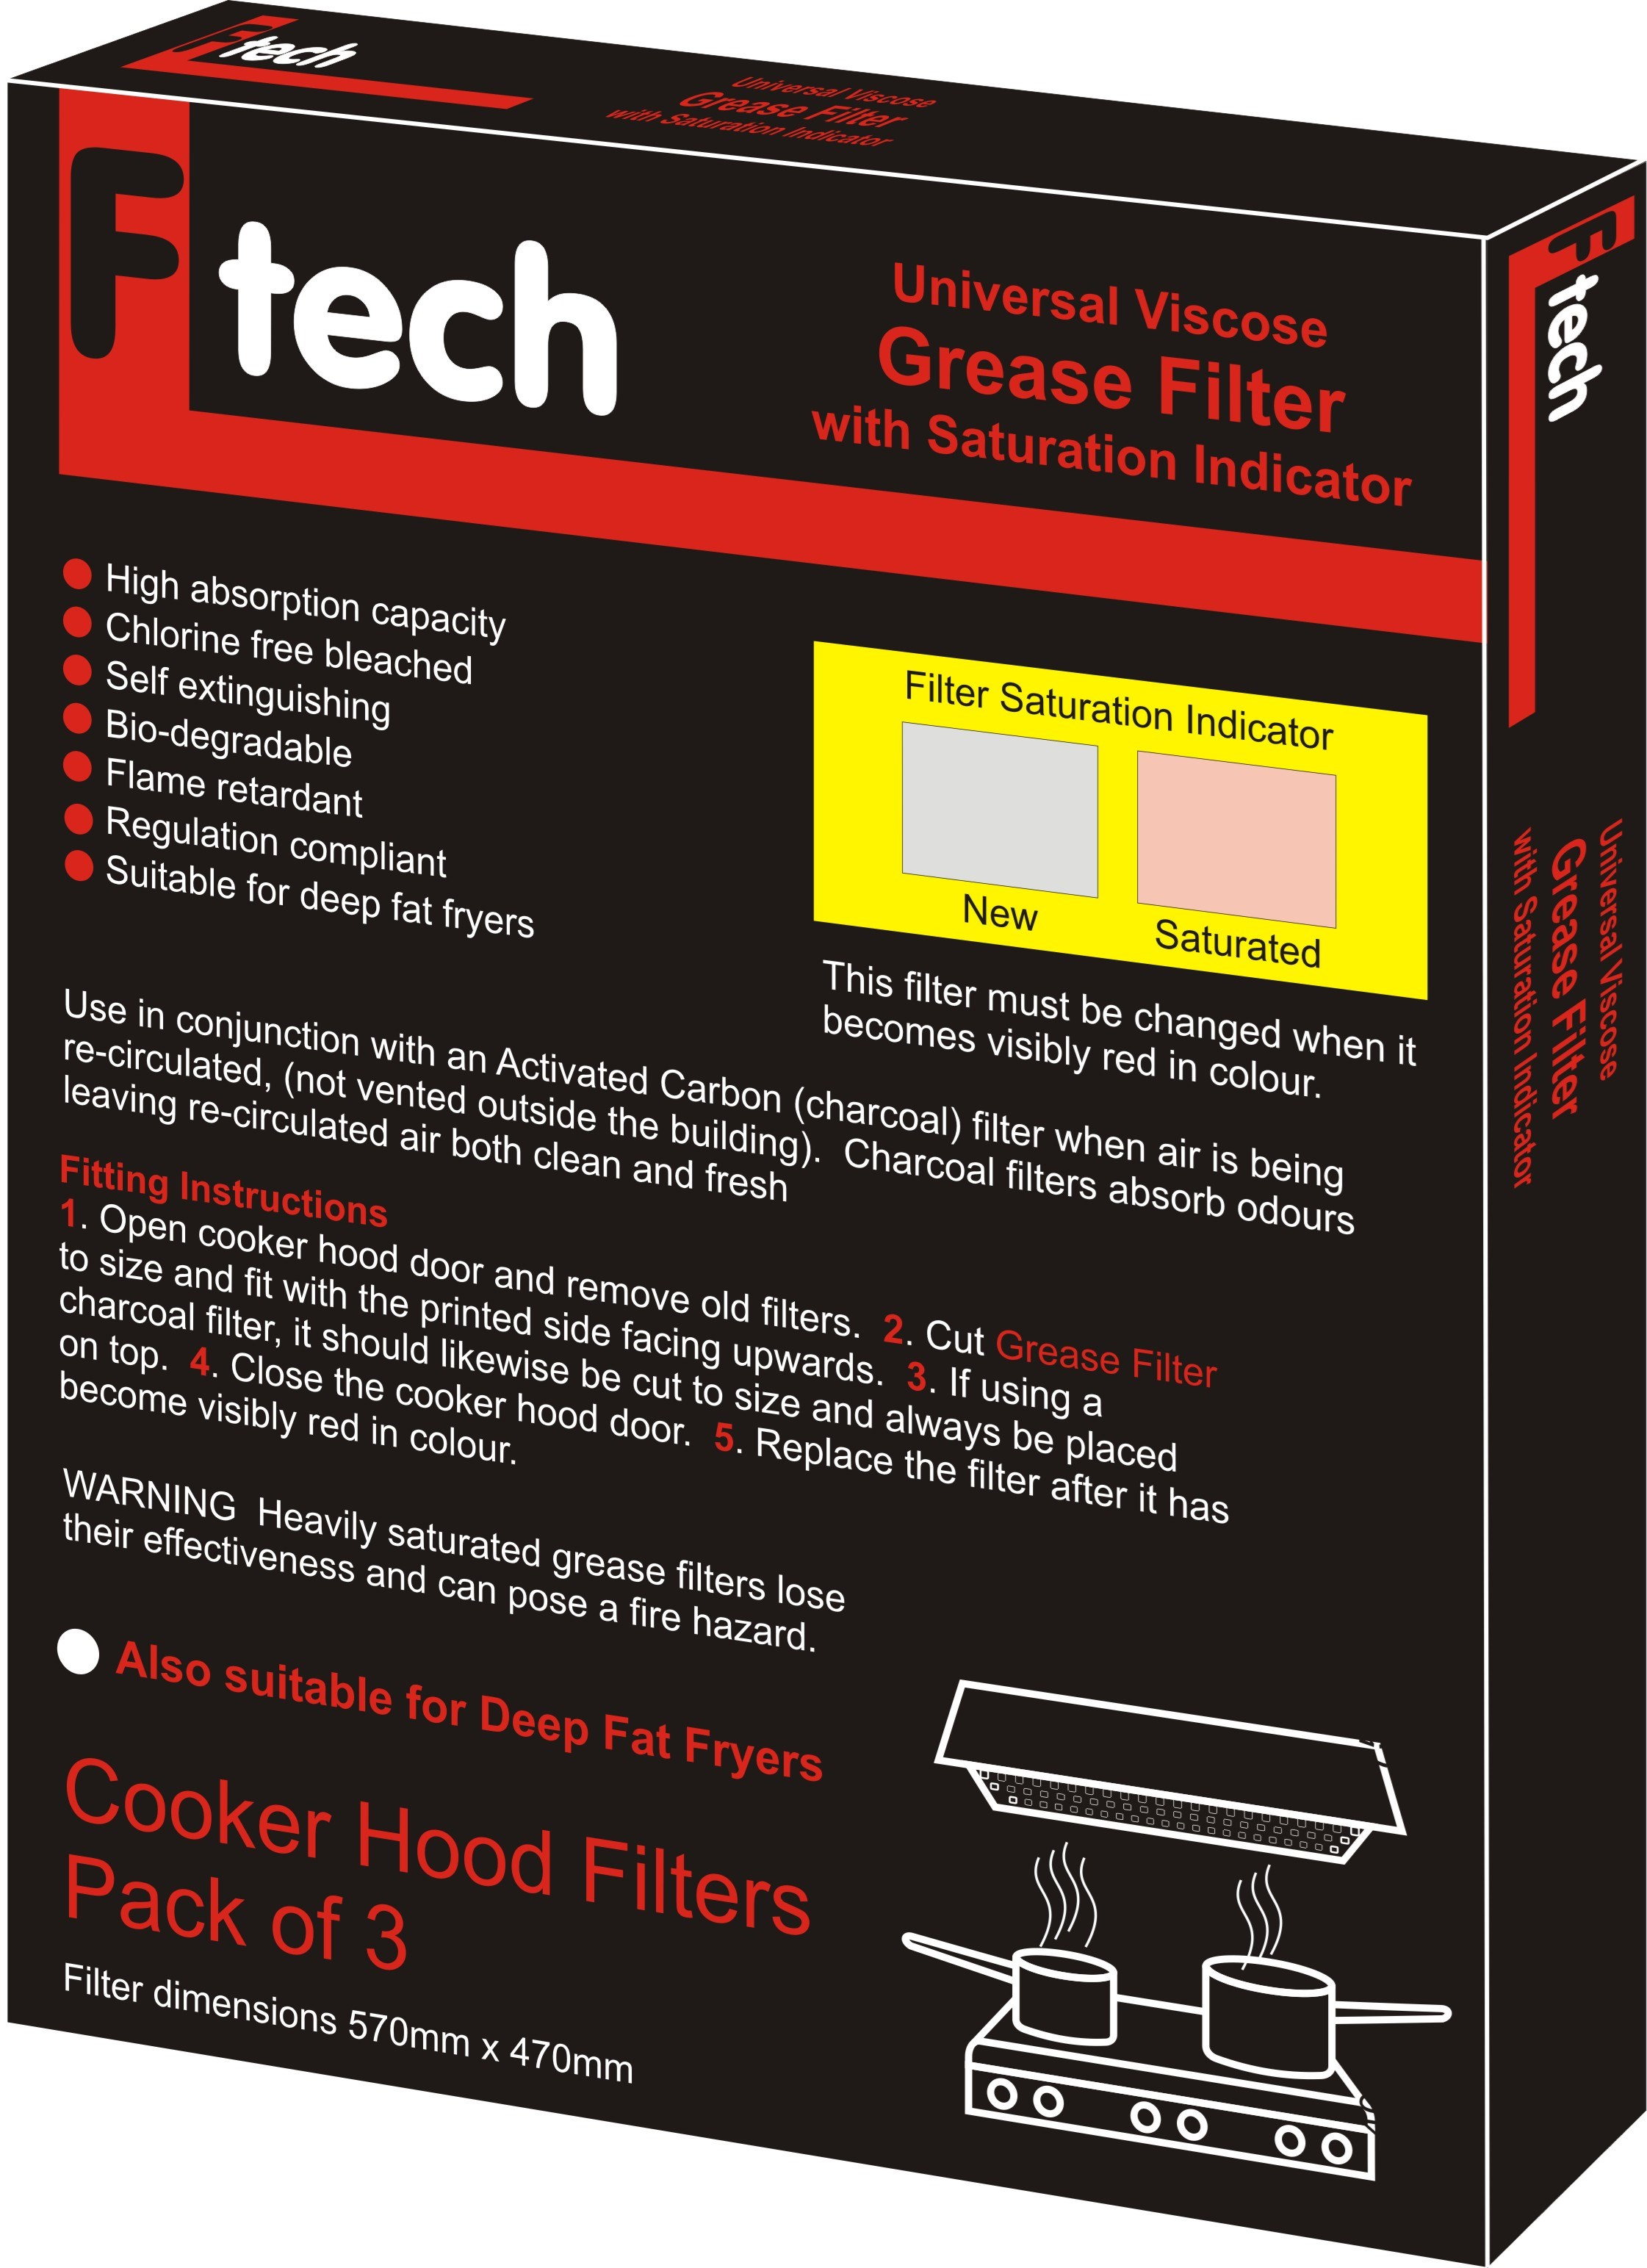 Fiber Tech  Red Universal Viscose Grease Filter - 3 Pack